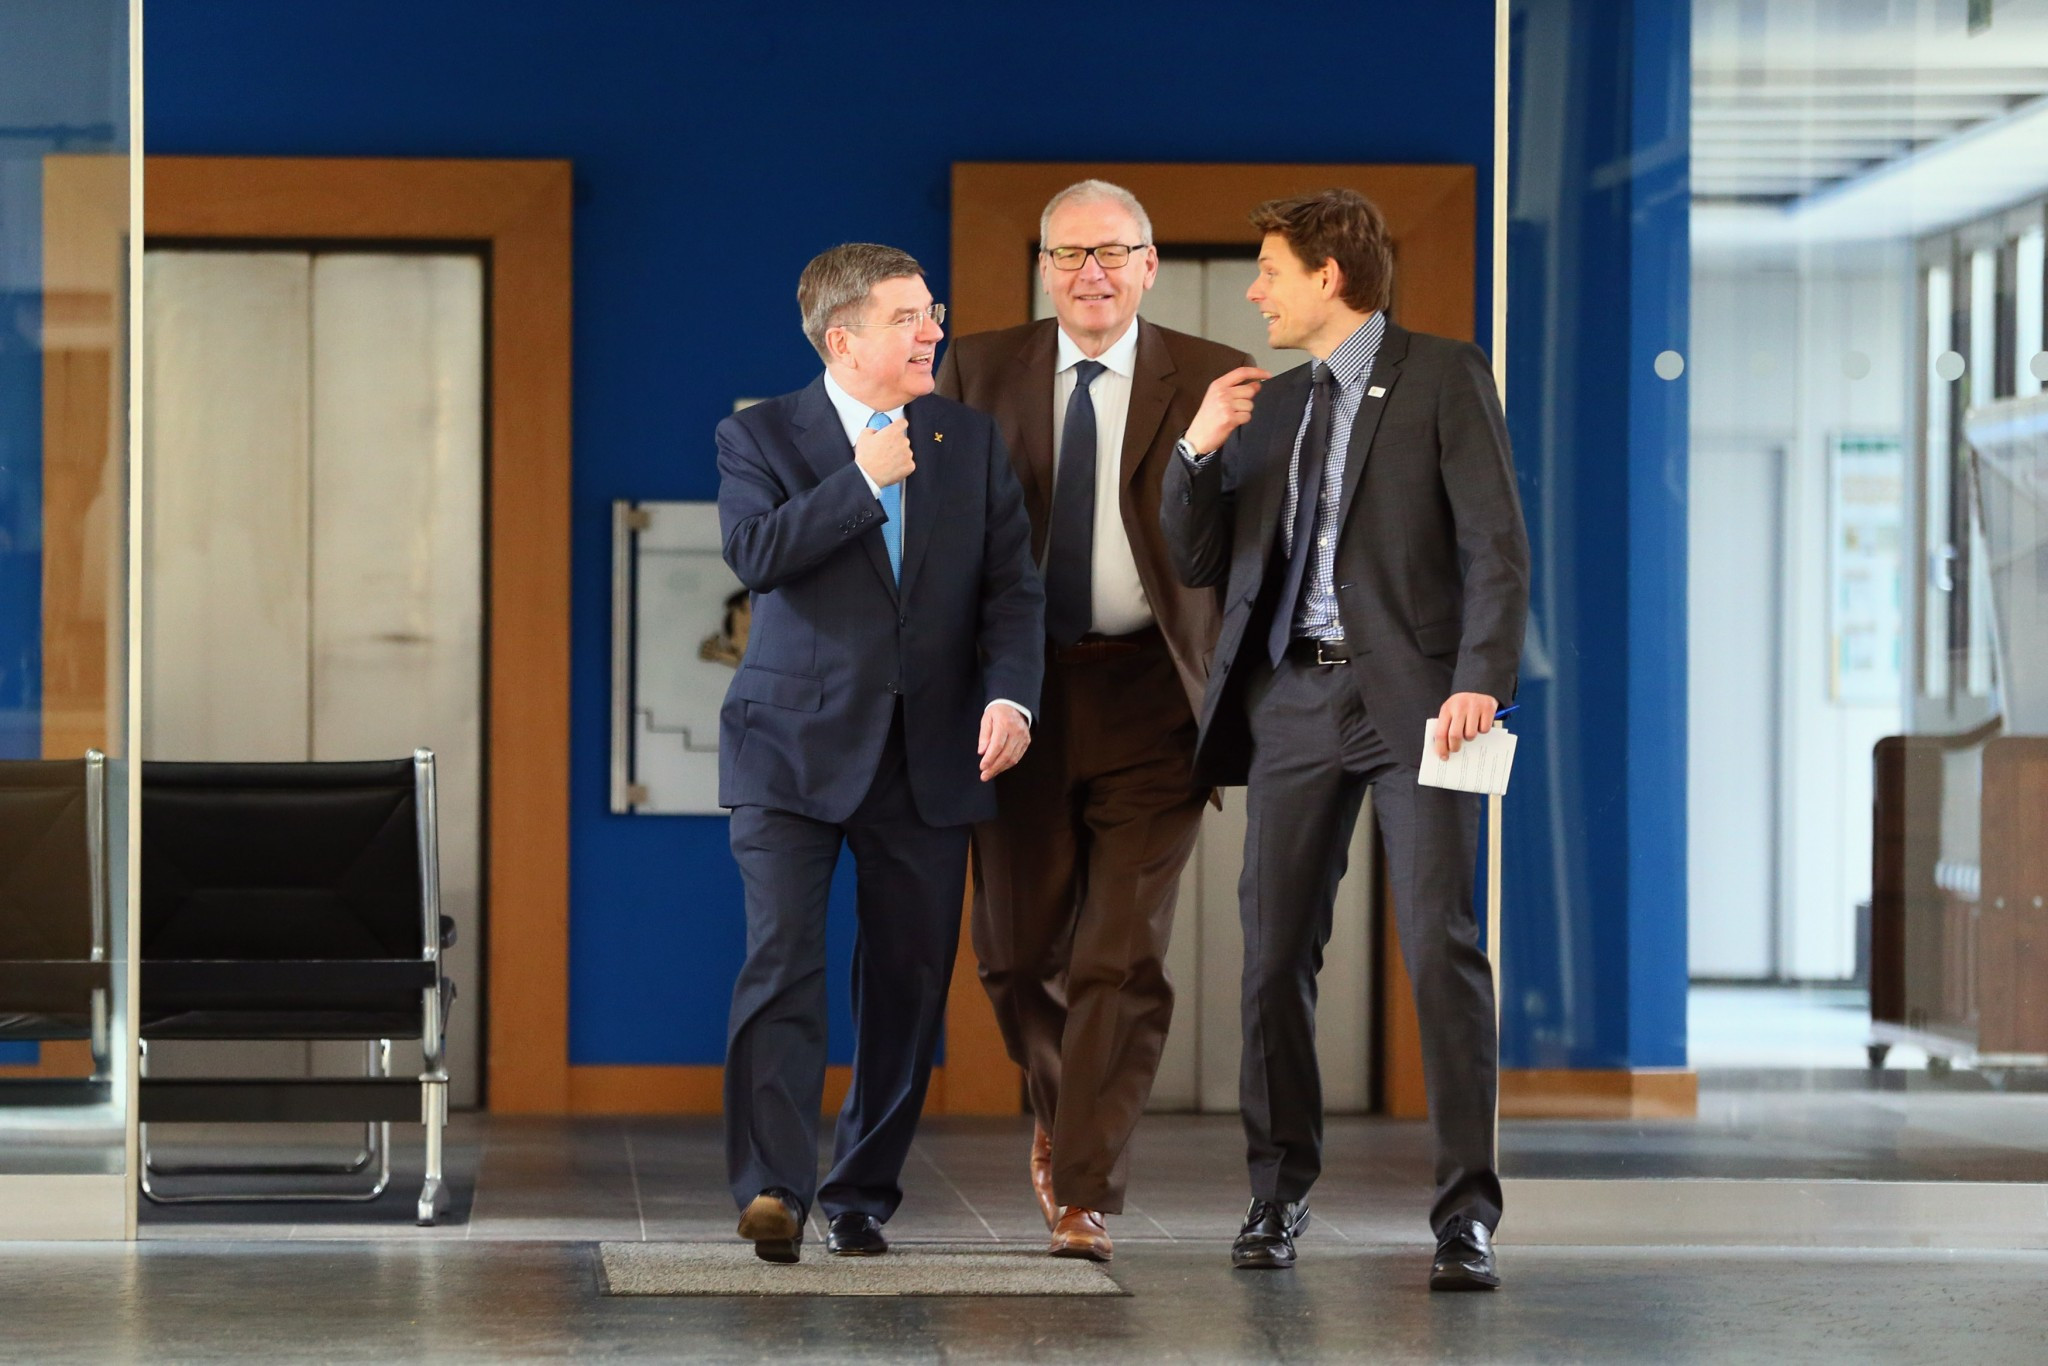 Christian Klaue, right, had moved to the IOC shortly after ex-DOSB chief Thomas Bach succeeded Jacques Rogge as its President in September 2013 ©Getty Images